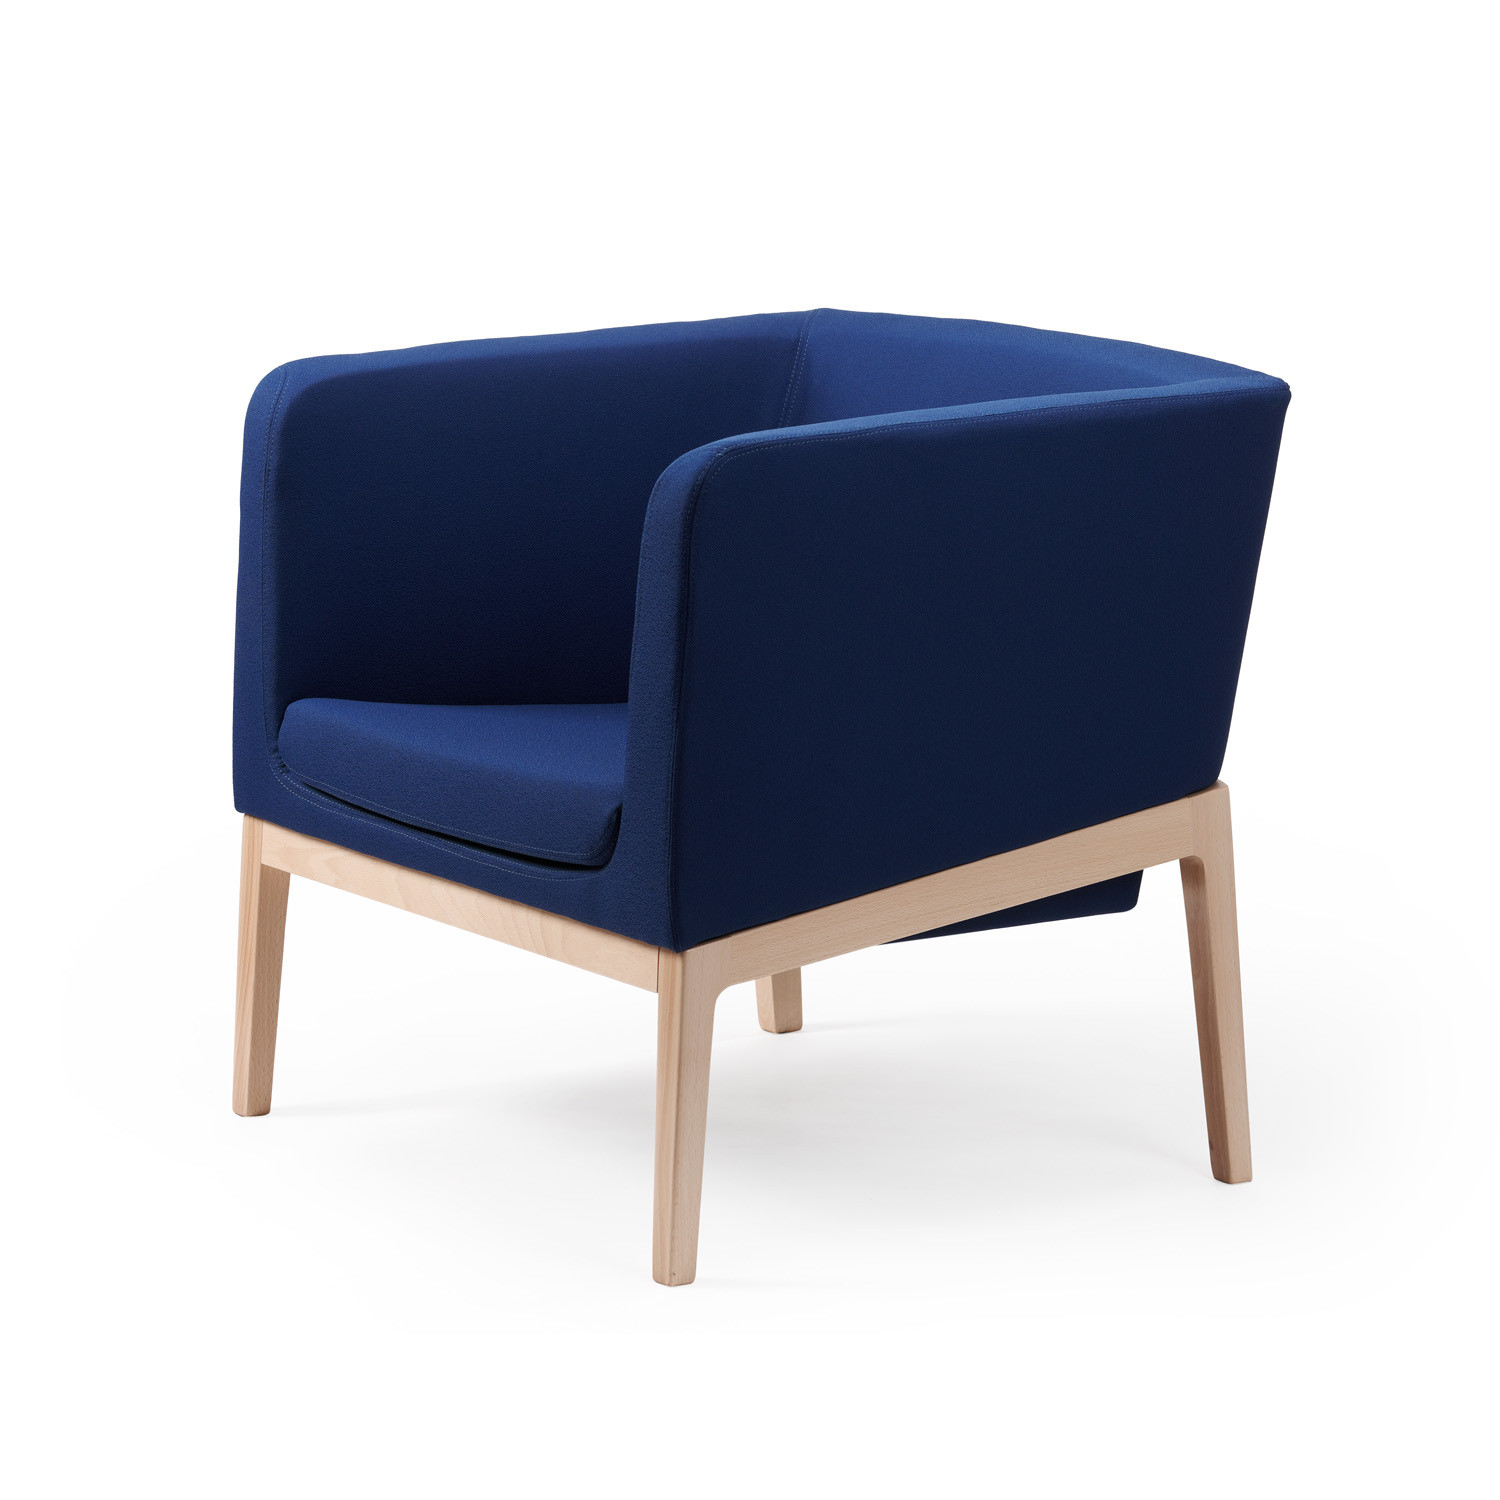 Tonic Lounge Chair 4-Legged Wood Base